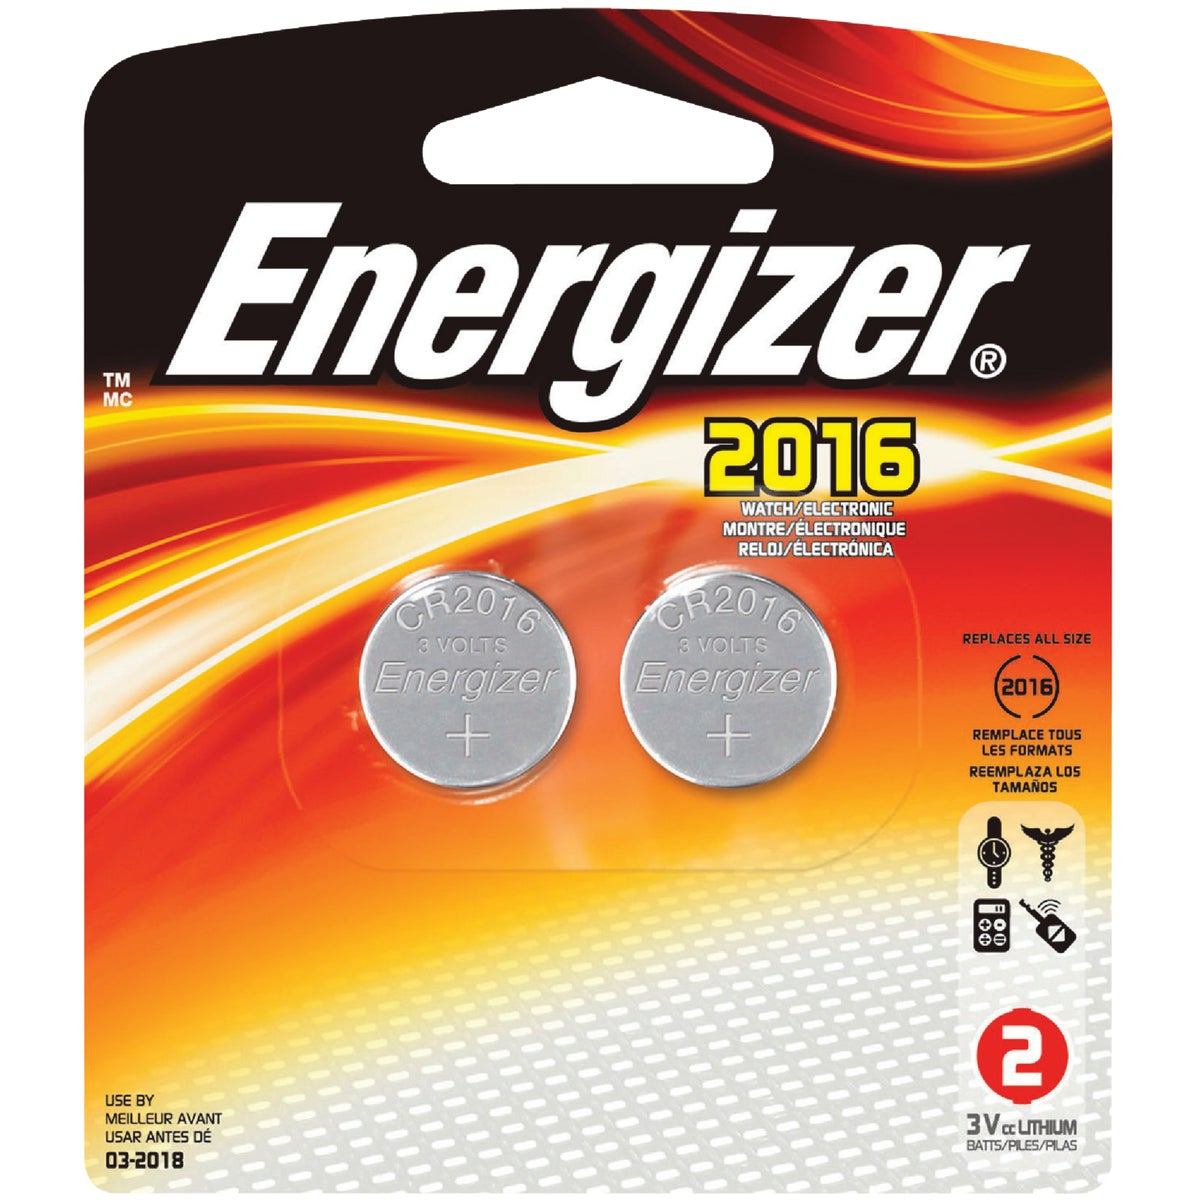 LITHIUM WATCH BATTERY - 2016BP-2 by Energizer